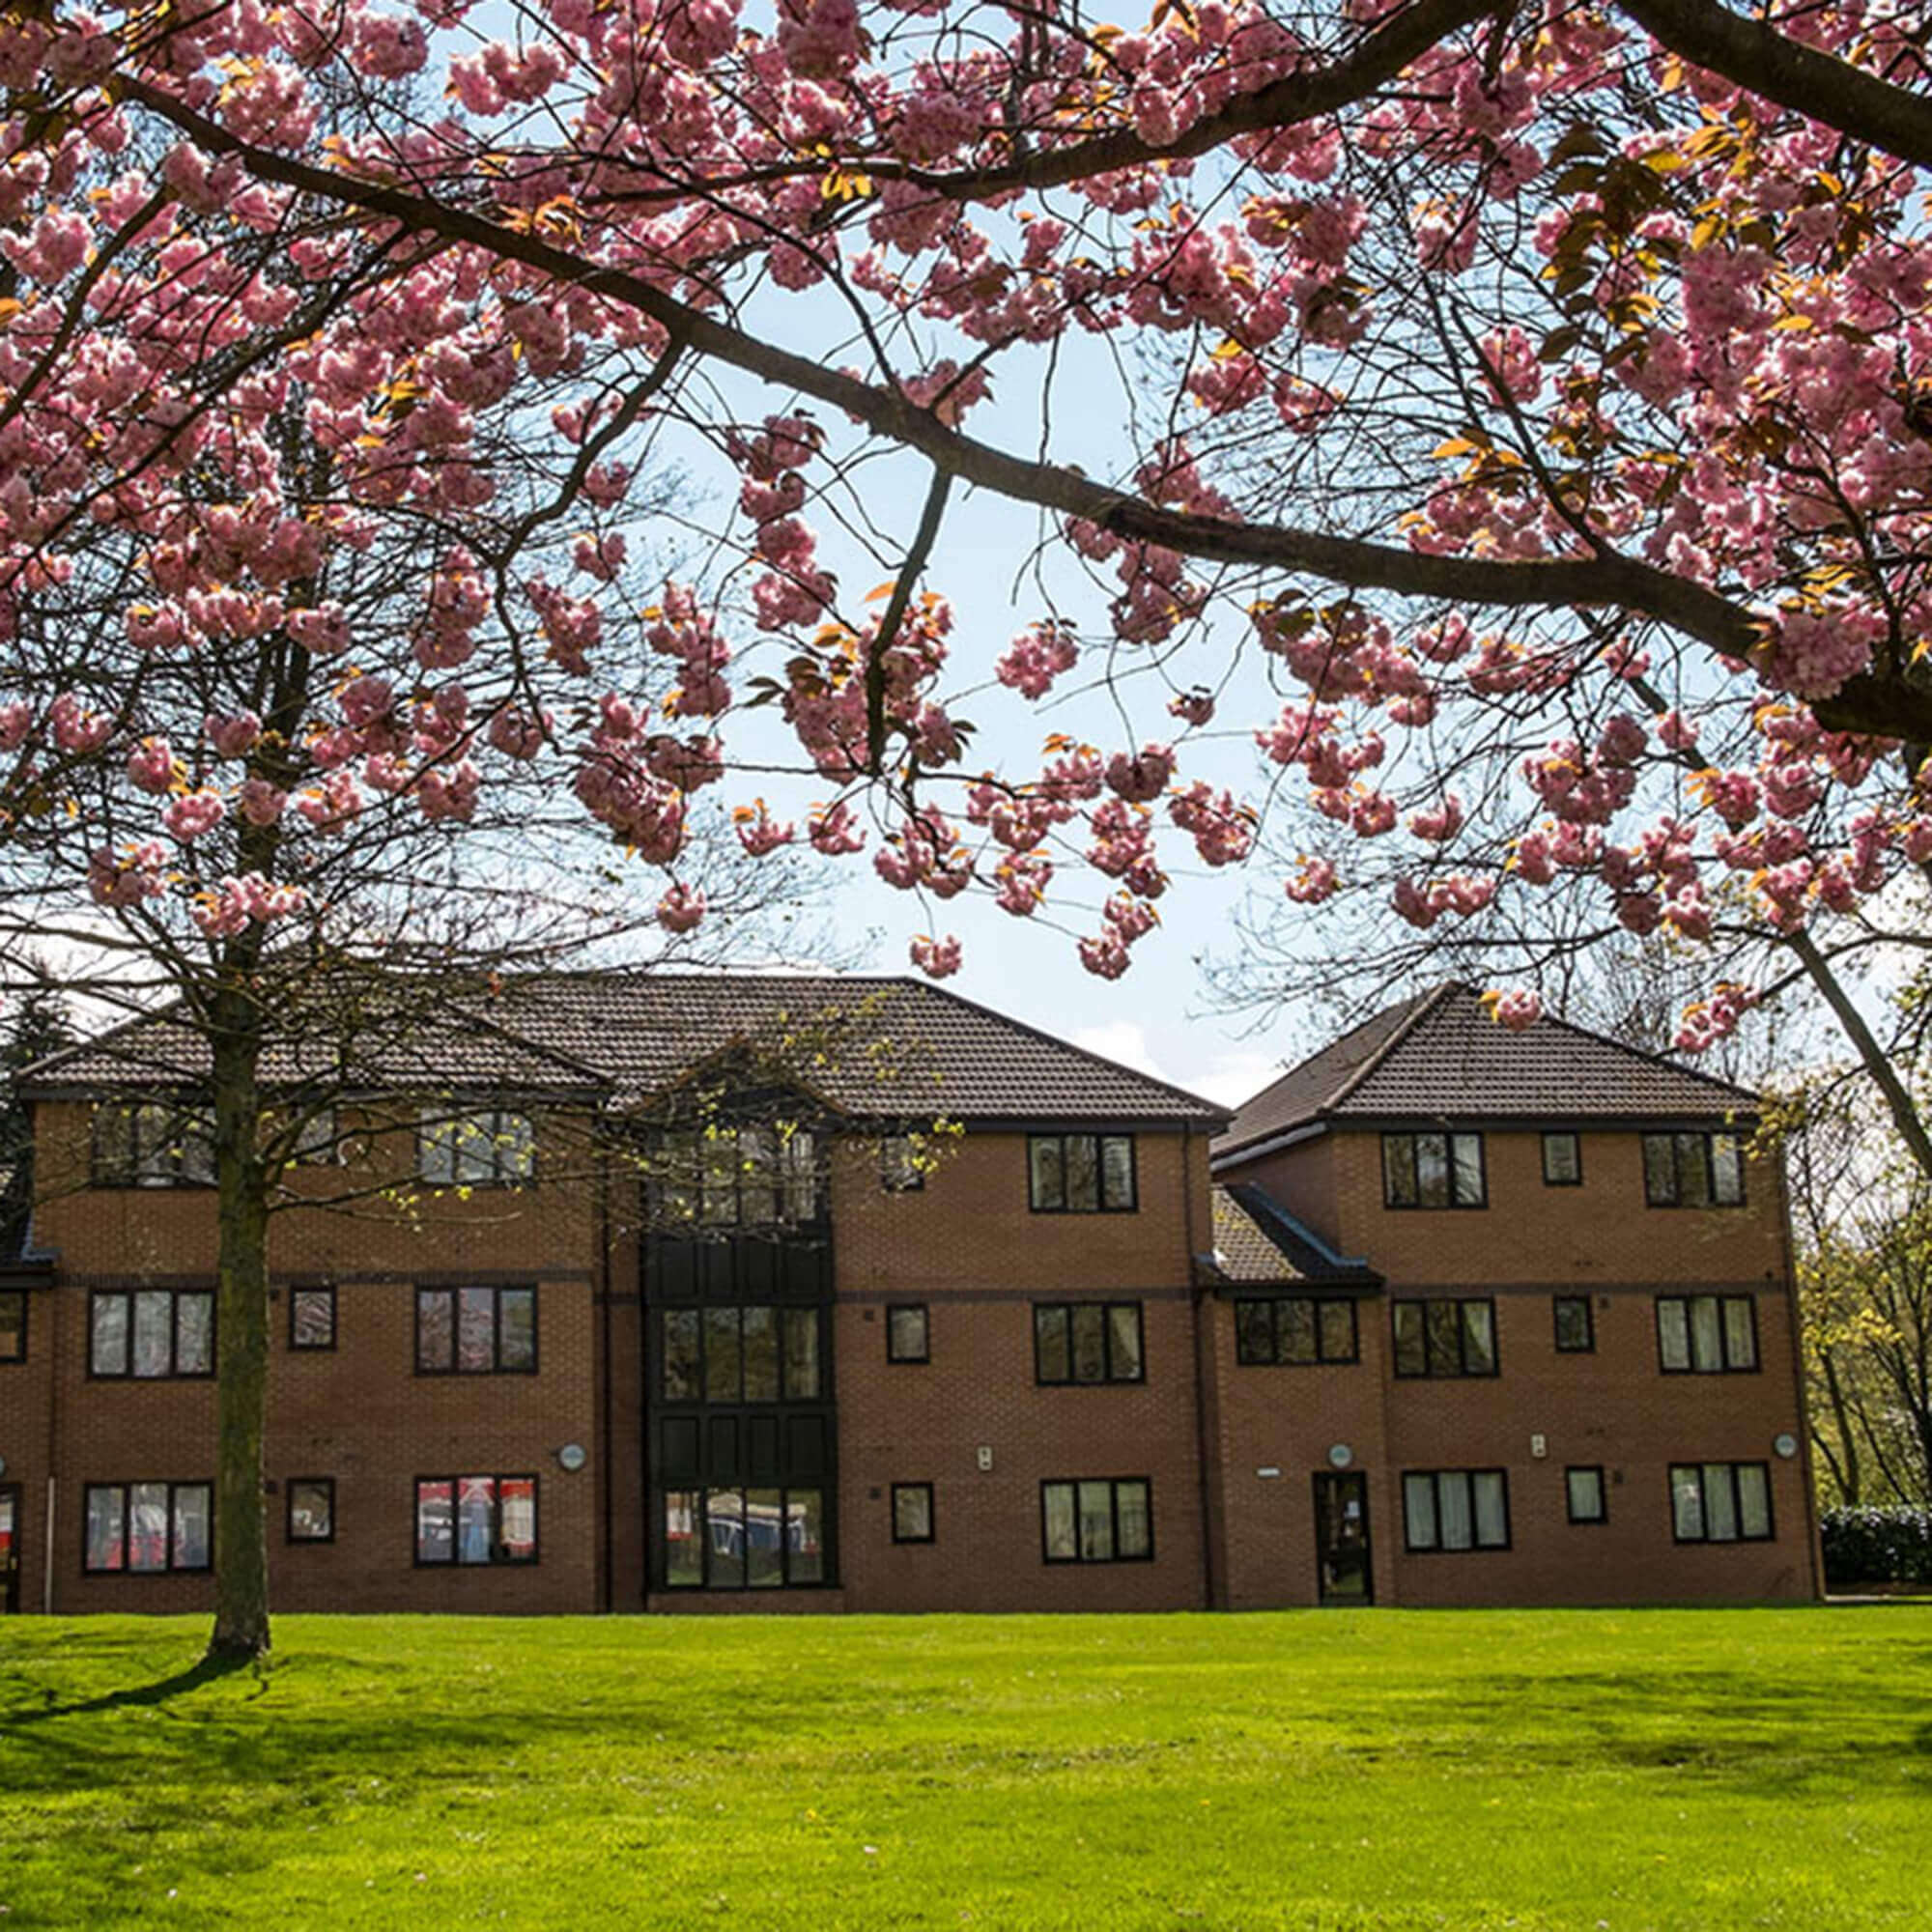 Flamsteed Court with cherry blossom tree in bloom